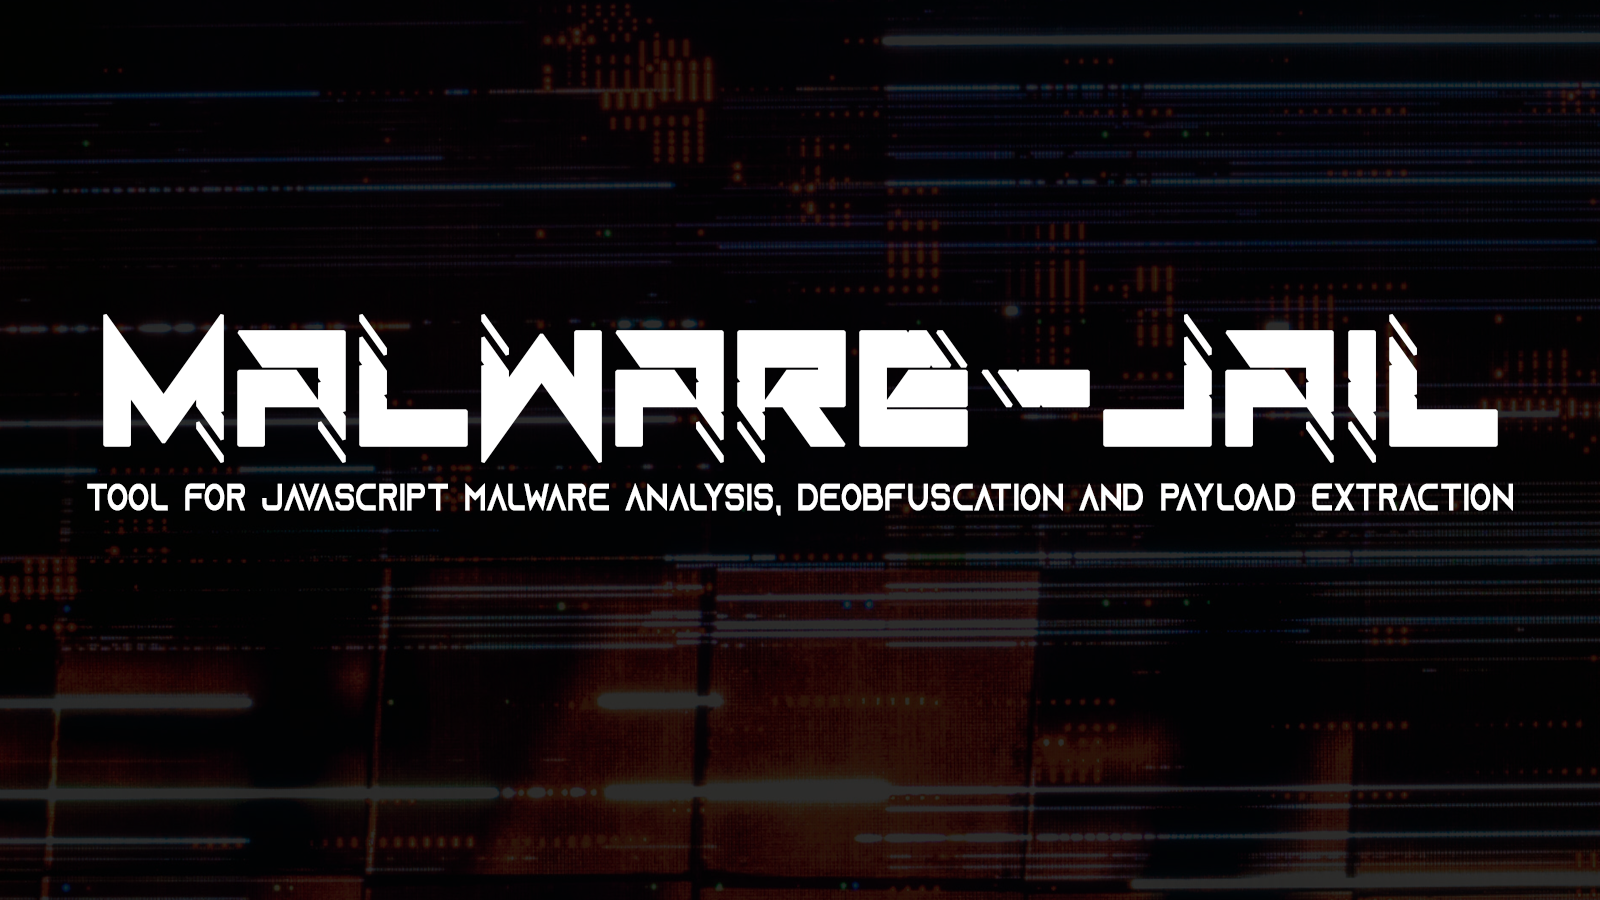 Malware-Jail - Tool For Javascript Malware Analysis, Deobfuscation and Payload Extraction